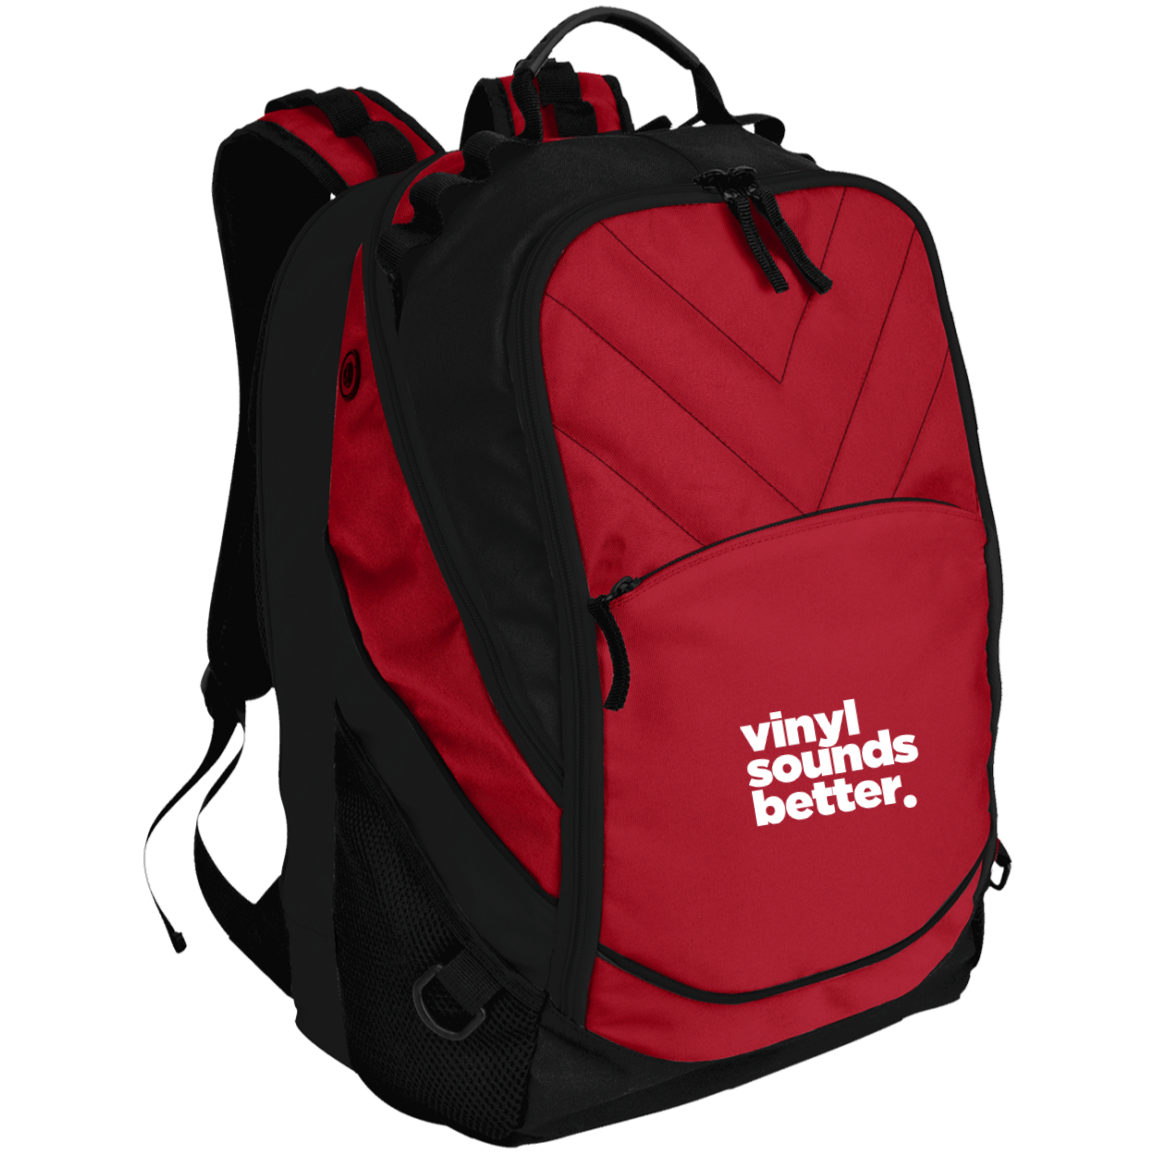 Vinyl Sounds Better Laptop Computer Backpack